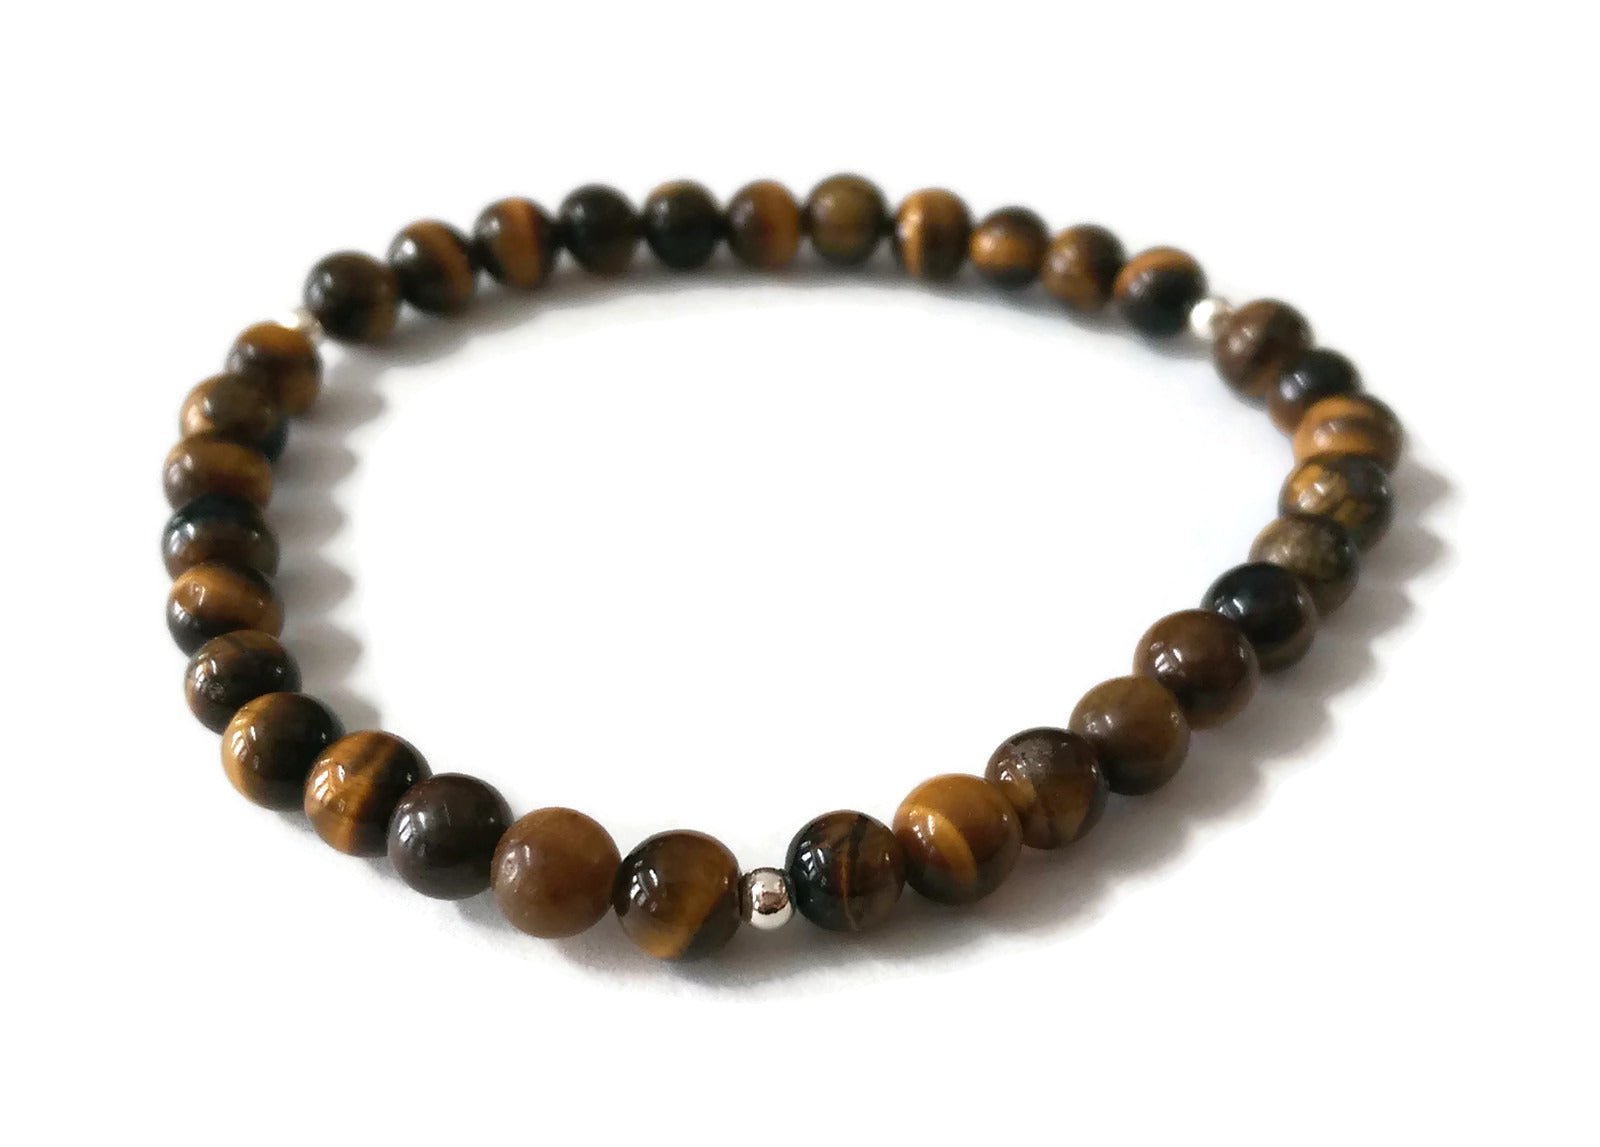 6mm Tiger Eye Stone Stone Stretch Meditation Yoga Bracelet | 925 Silver Third or Sacral Chakra | Brown and Yellow Small Petite Jewelry Active